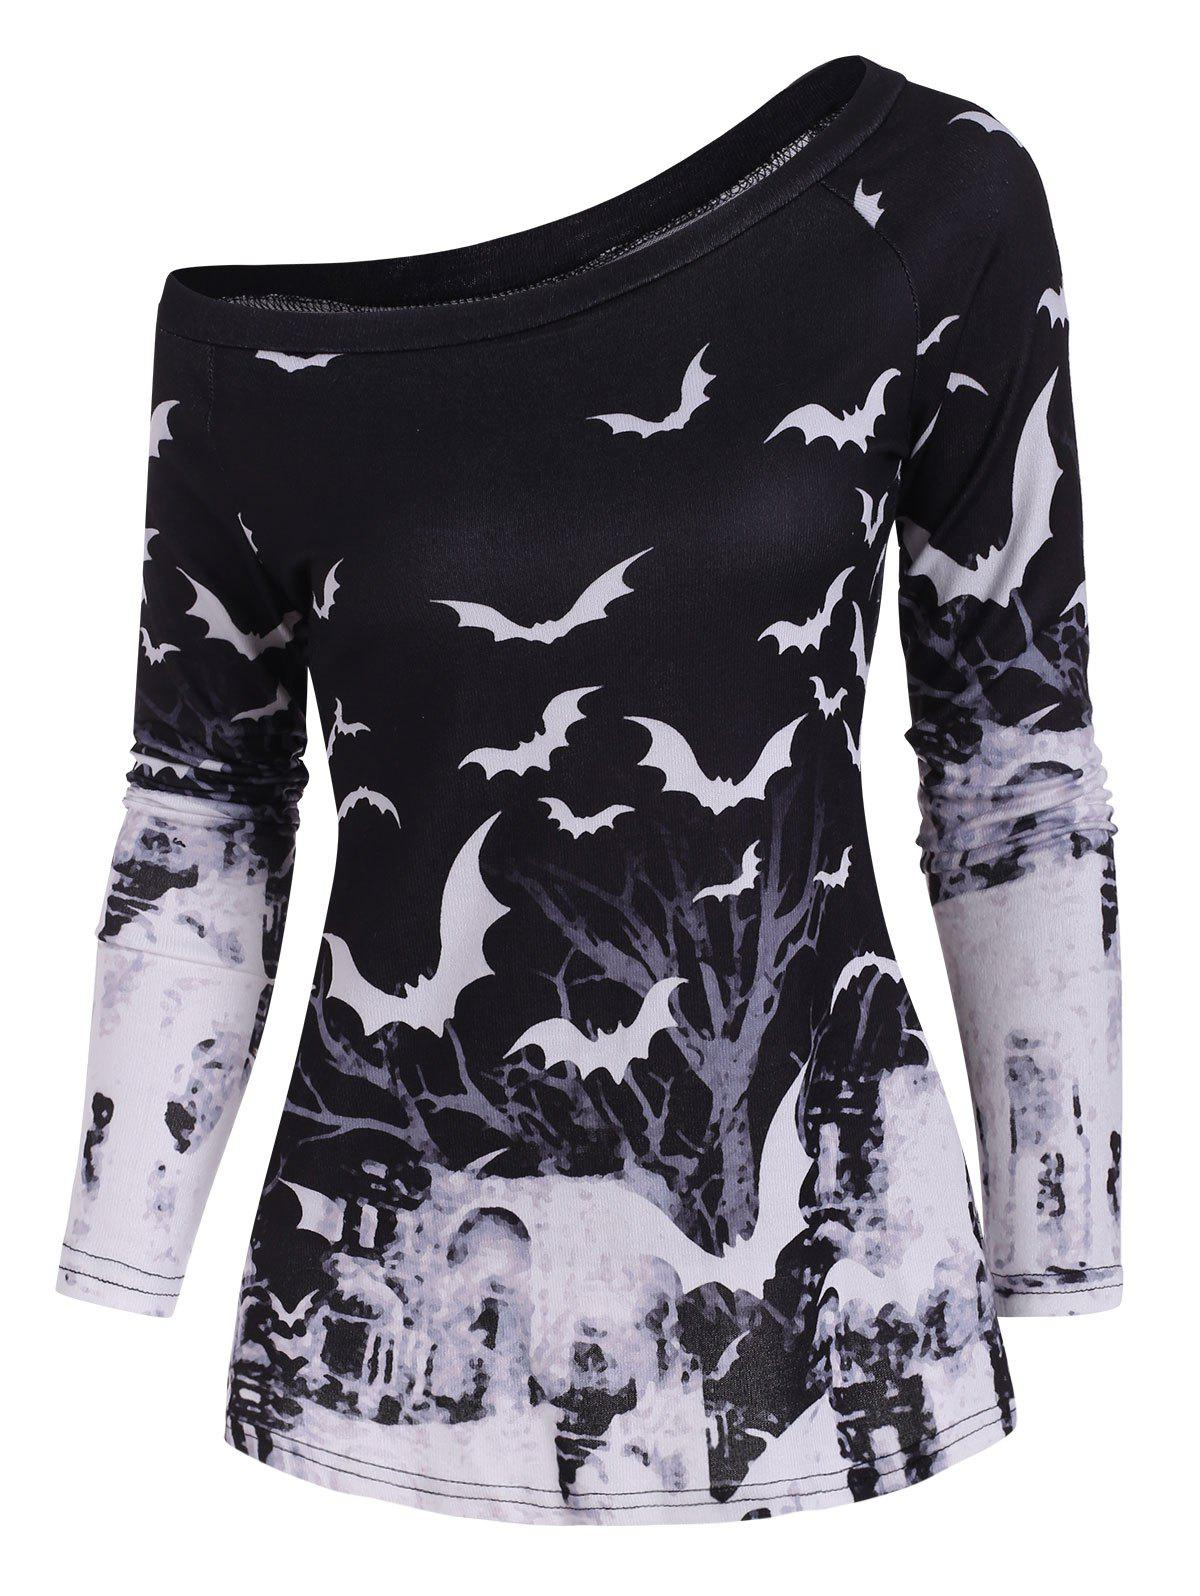 Tree Bat Print One Shoulder Ralgan Sleeve Knitwear - BLACK 2XL